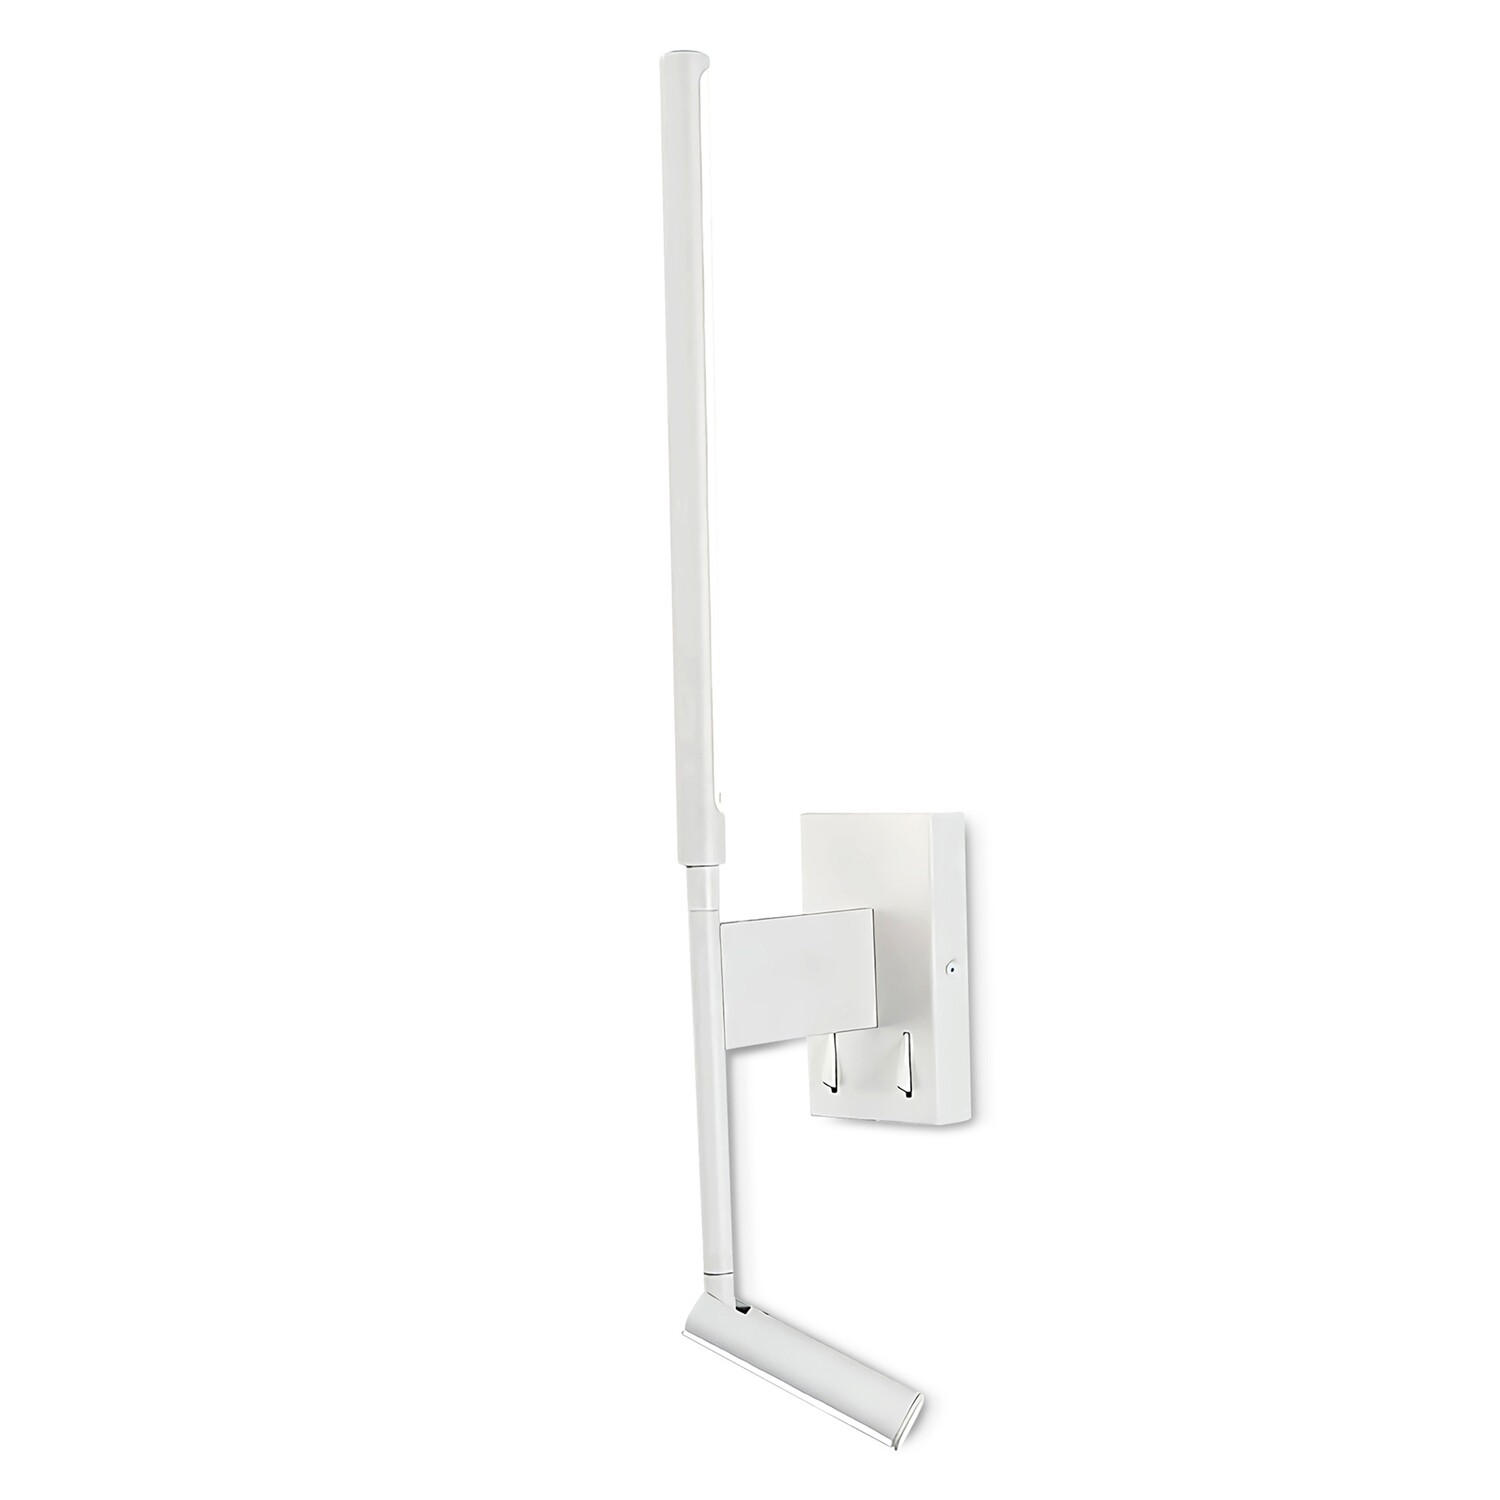 Torch Wall + Reading Light, 6W + 3W LED, 3000K, 592lm Total, Individually Switched, Sand White